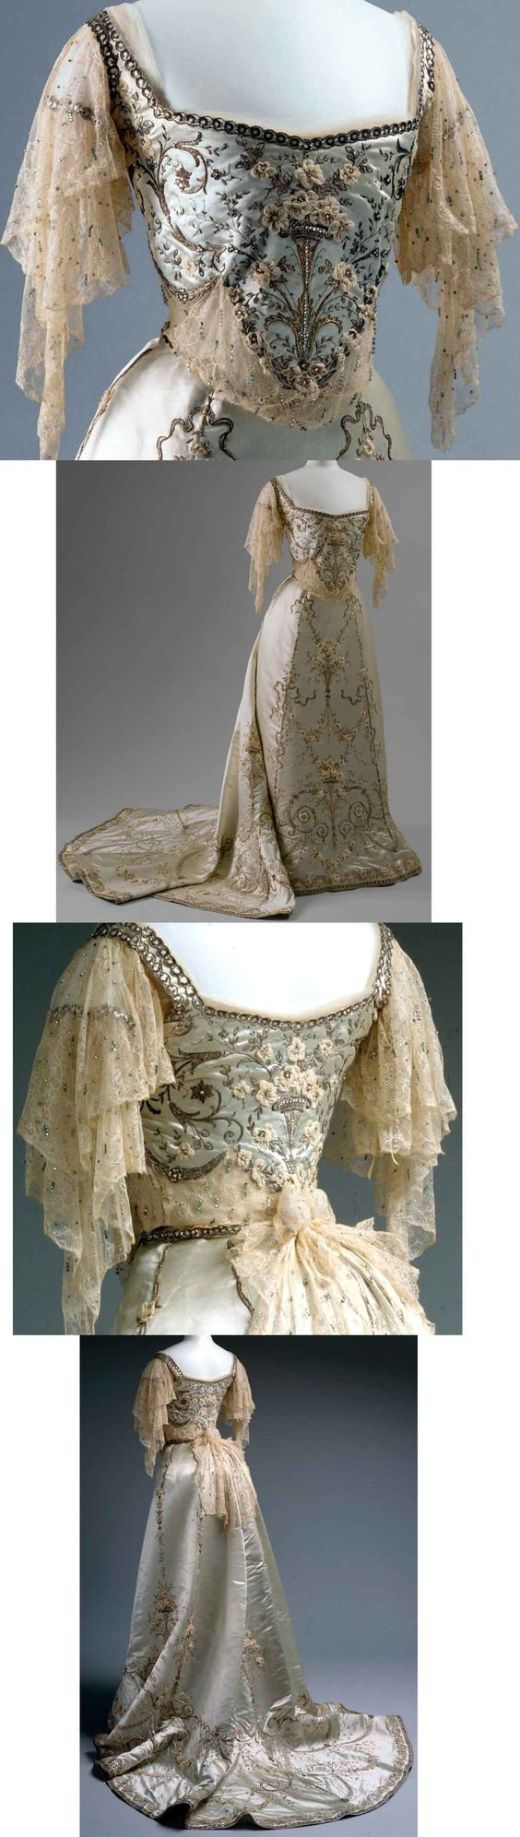 Worth ballgown, 1900-1905. Silk and cotton with metallic thread, glass, and metal ornamentation. #worth #ballgown #eveninggown #edwardian #vintagefashion: